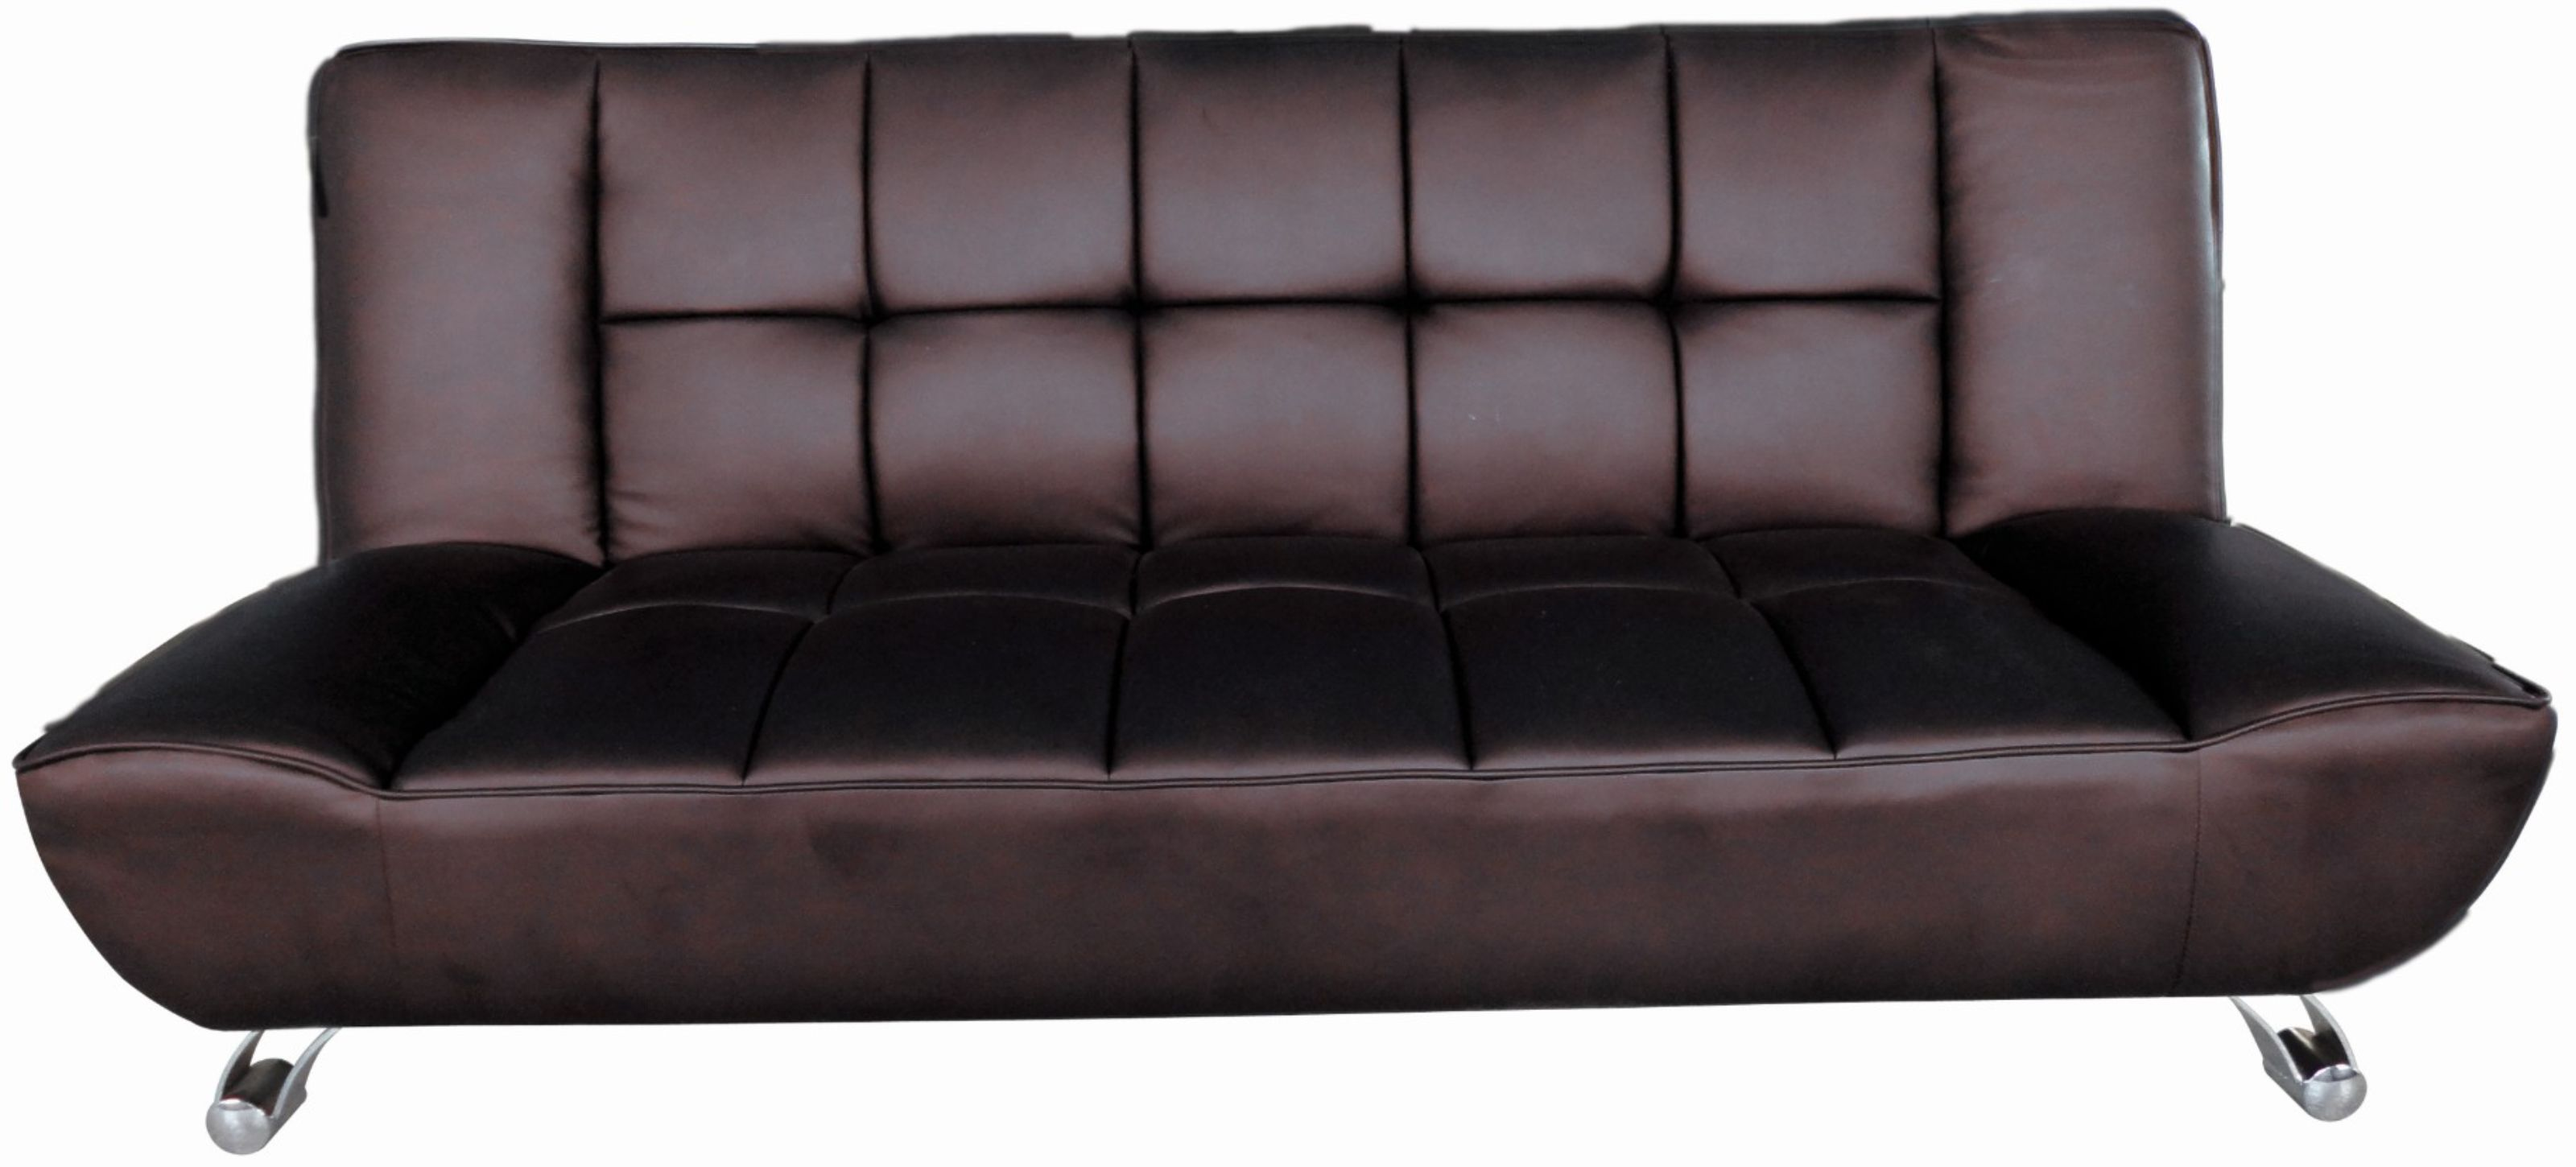 agata brown faux leather sofa bed with curved chrome finish legs